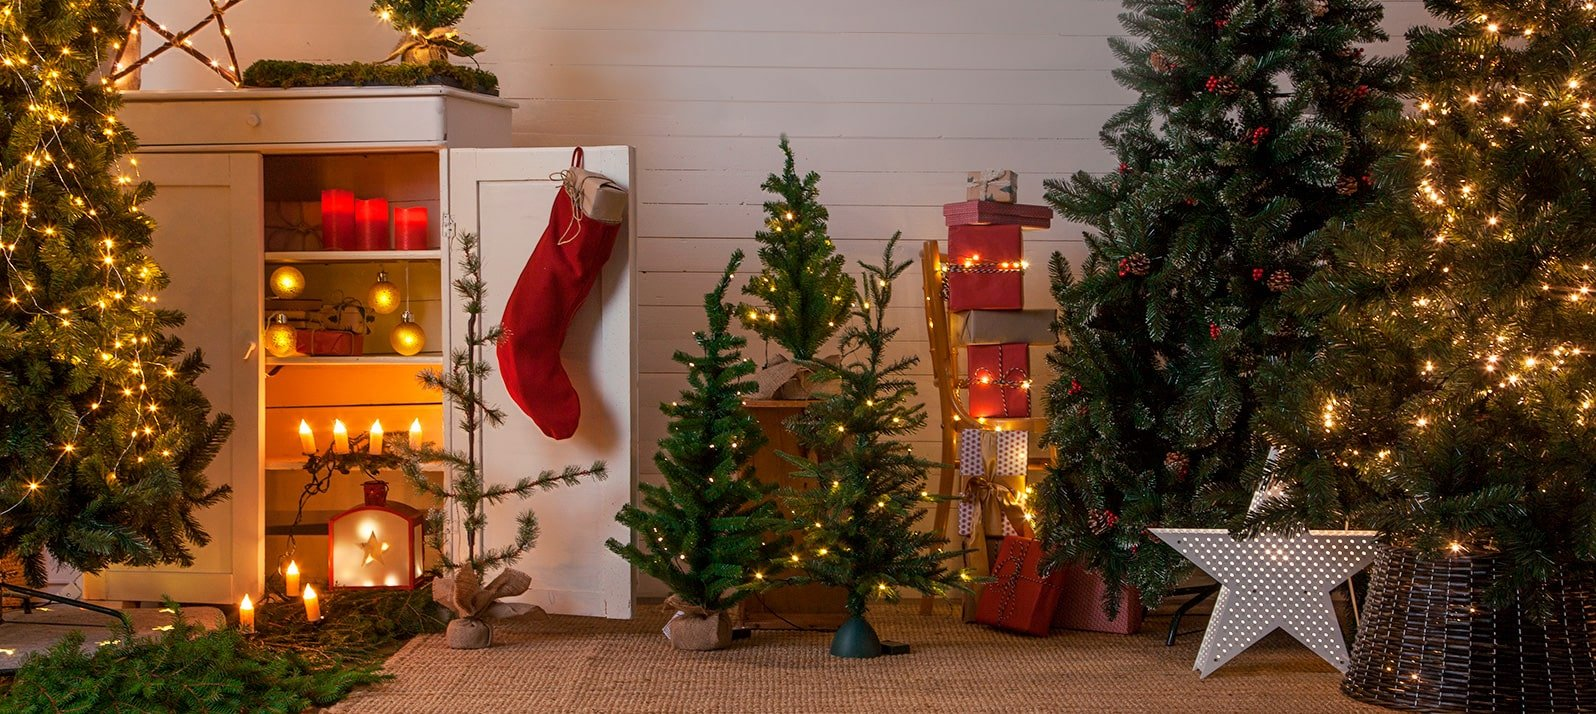 What's missing in your own Christmas tale?